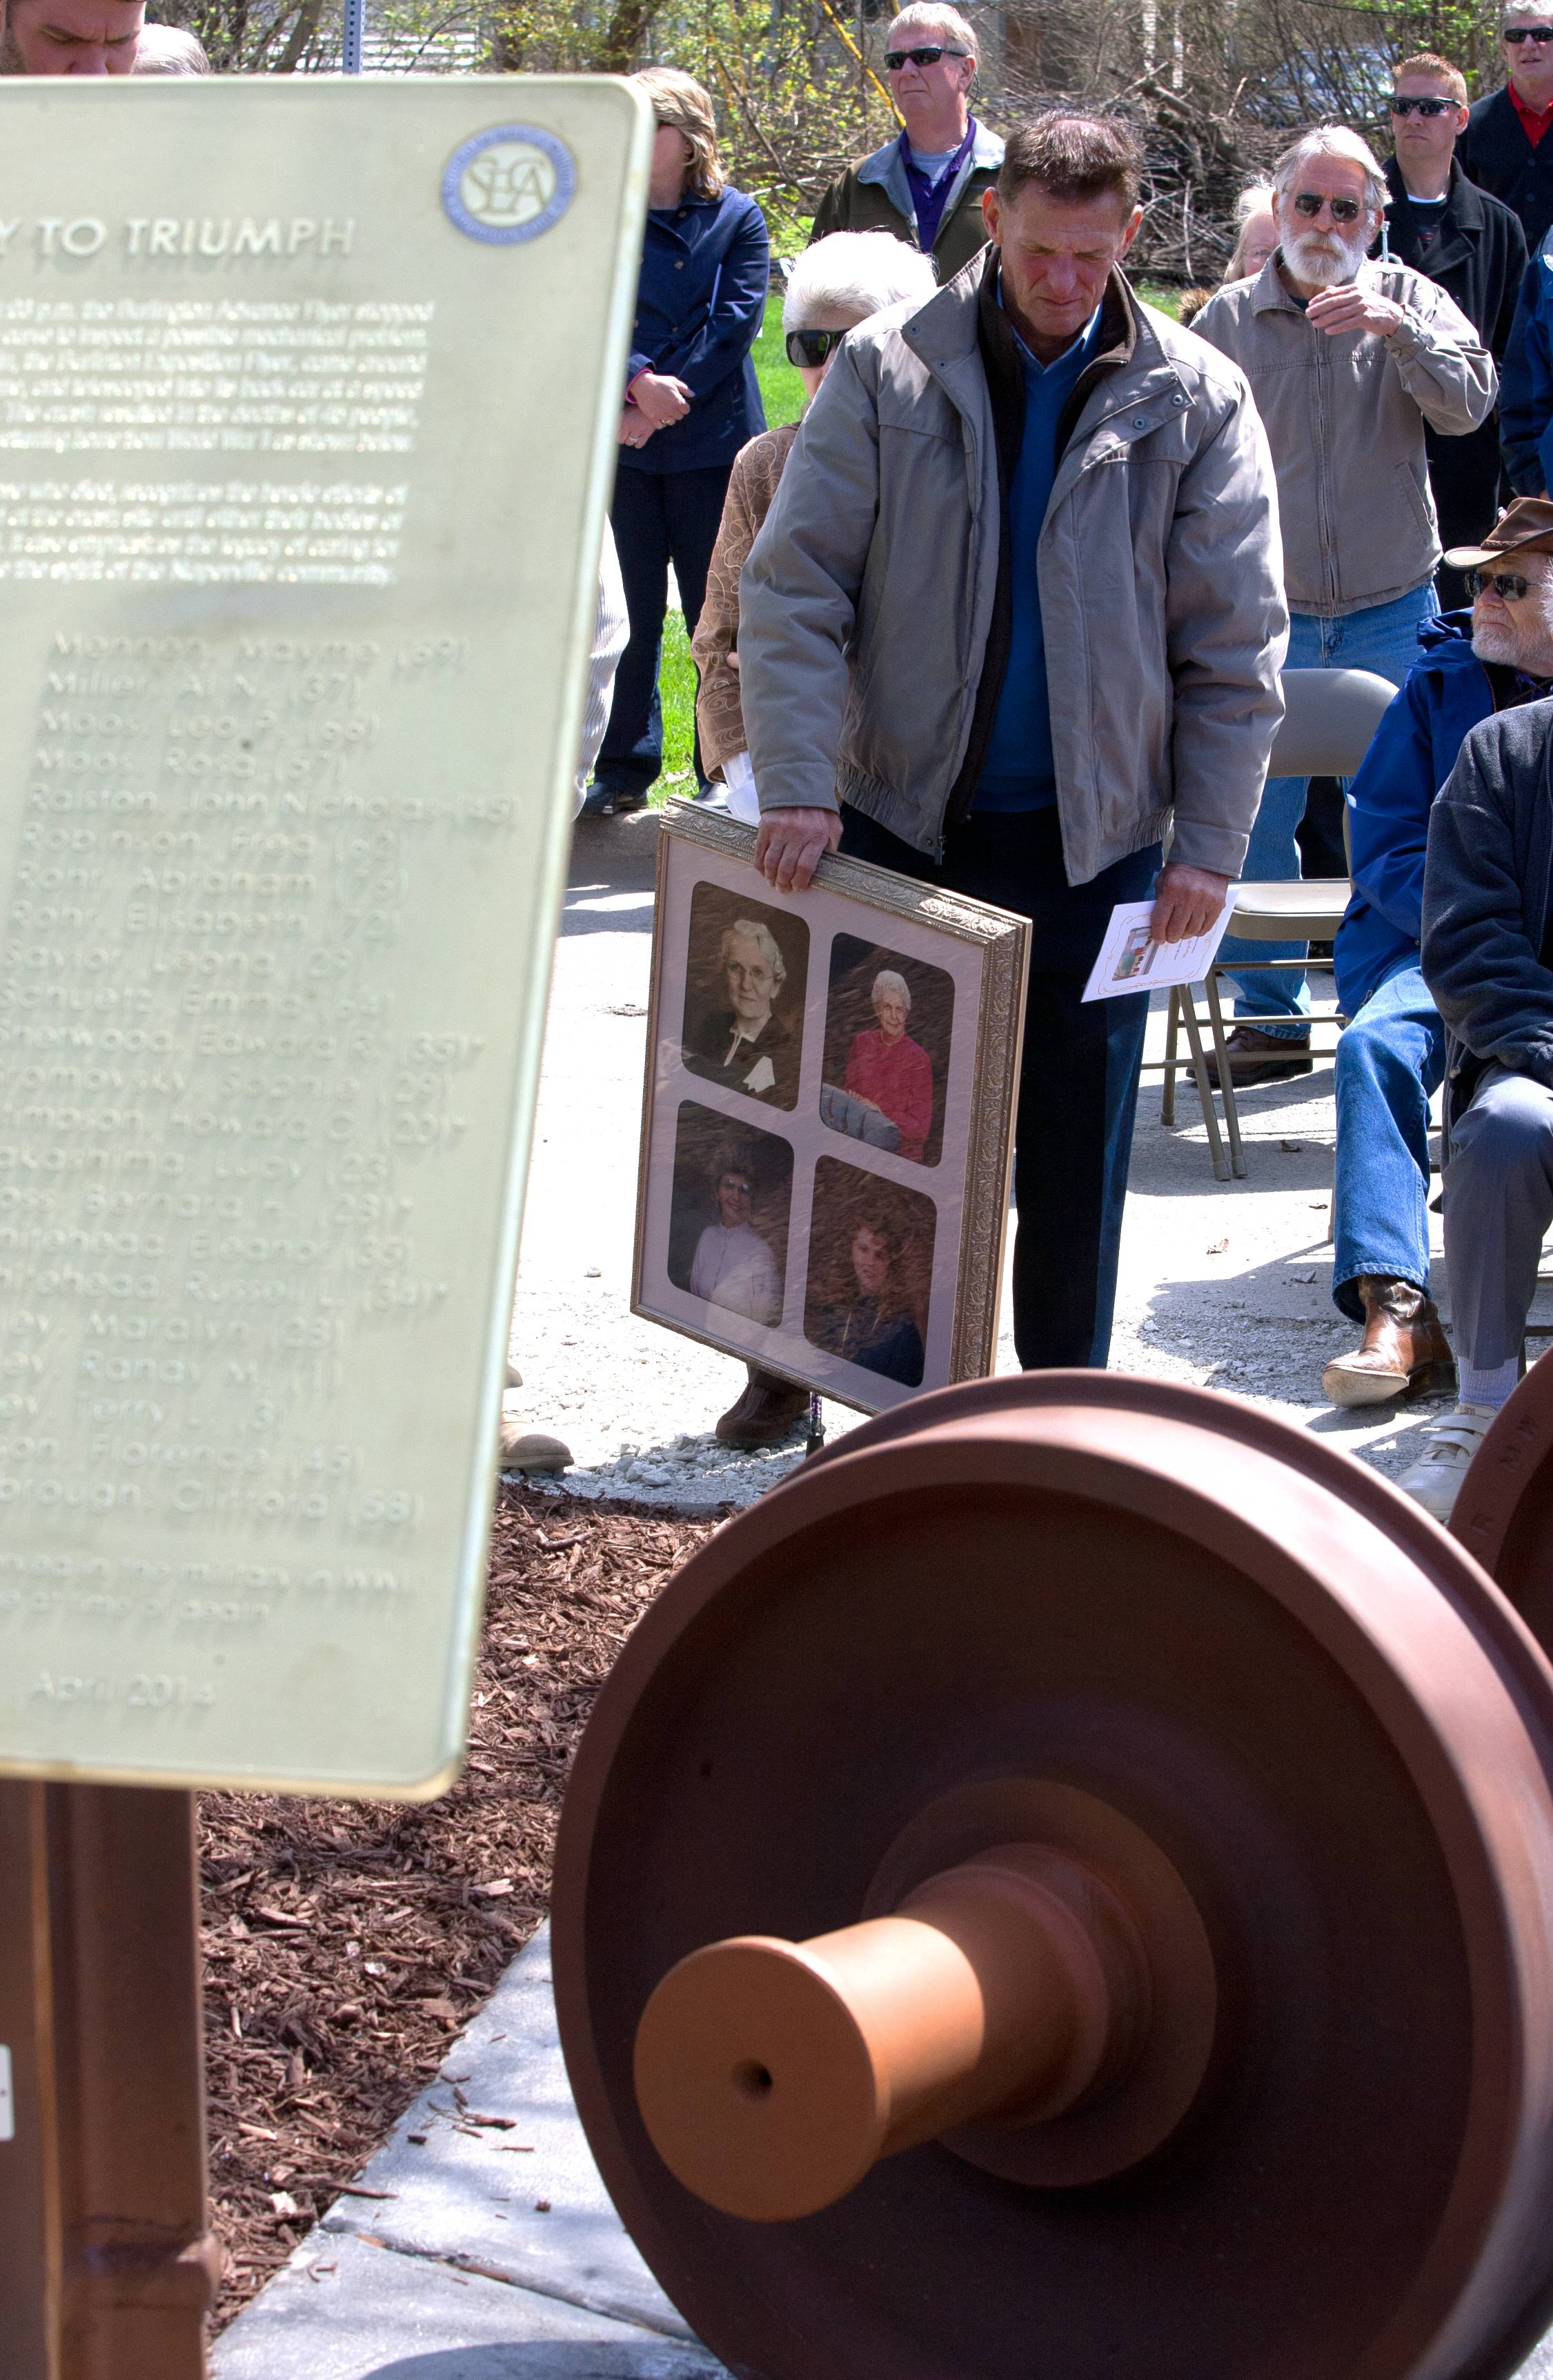 Paul McClelland of South Barrington holds framed photos which include one of his grandmother, Emma Scheutz, who was killed at the Loomis Street crossing. A new Naperville sculpture is dedicated the 1946 train crash.